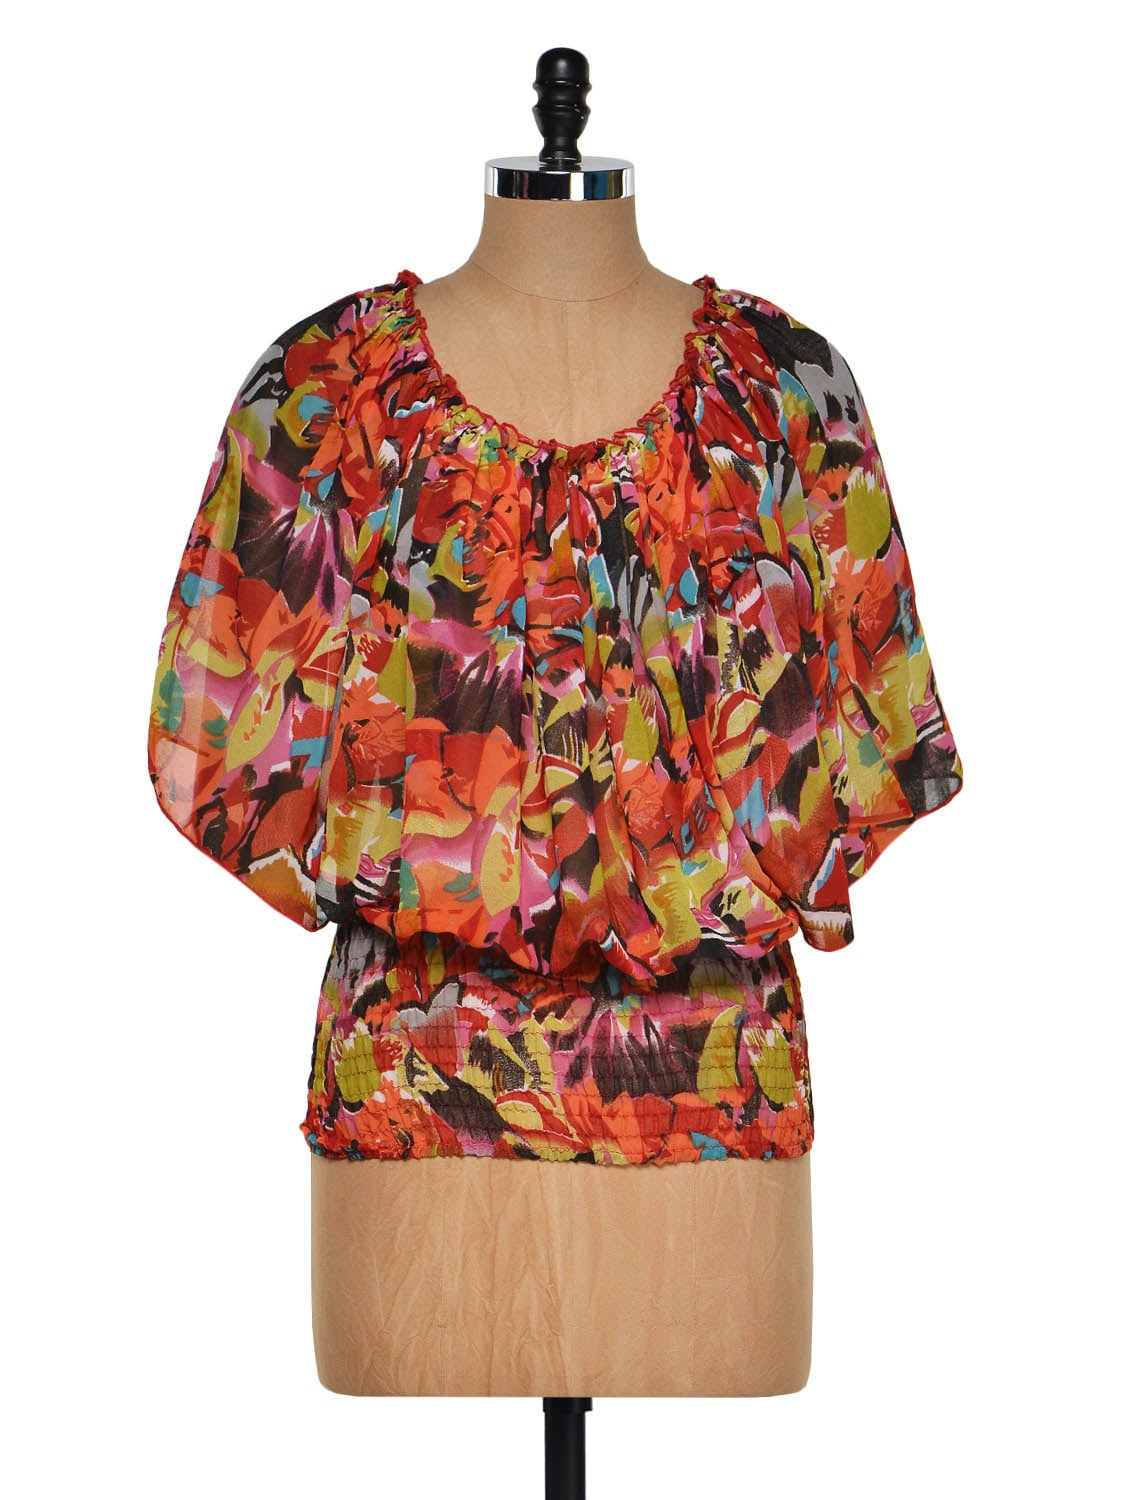 Floral Poncho Style Top - Purys